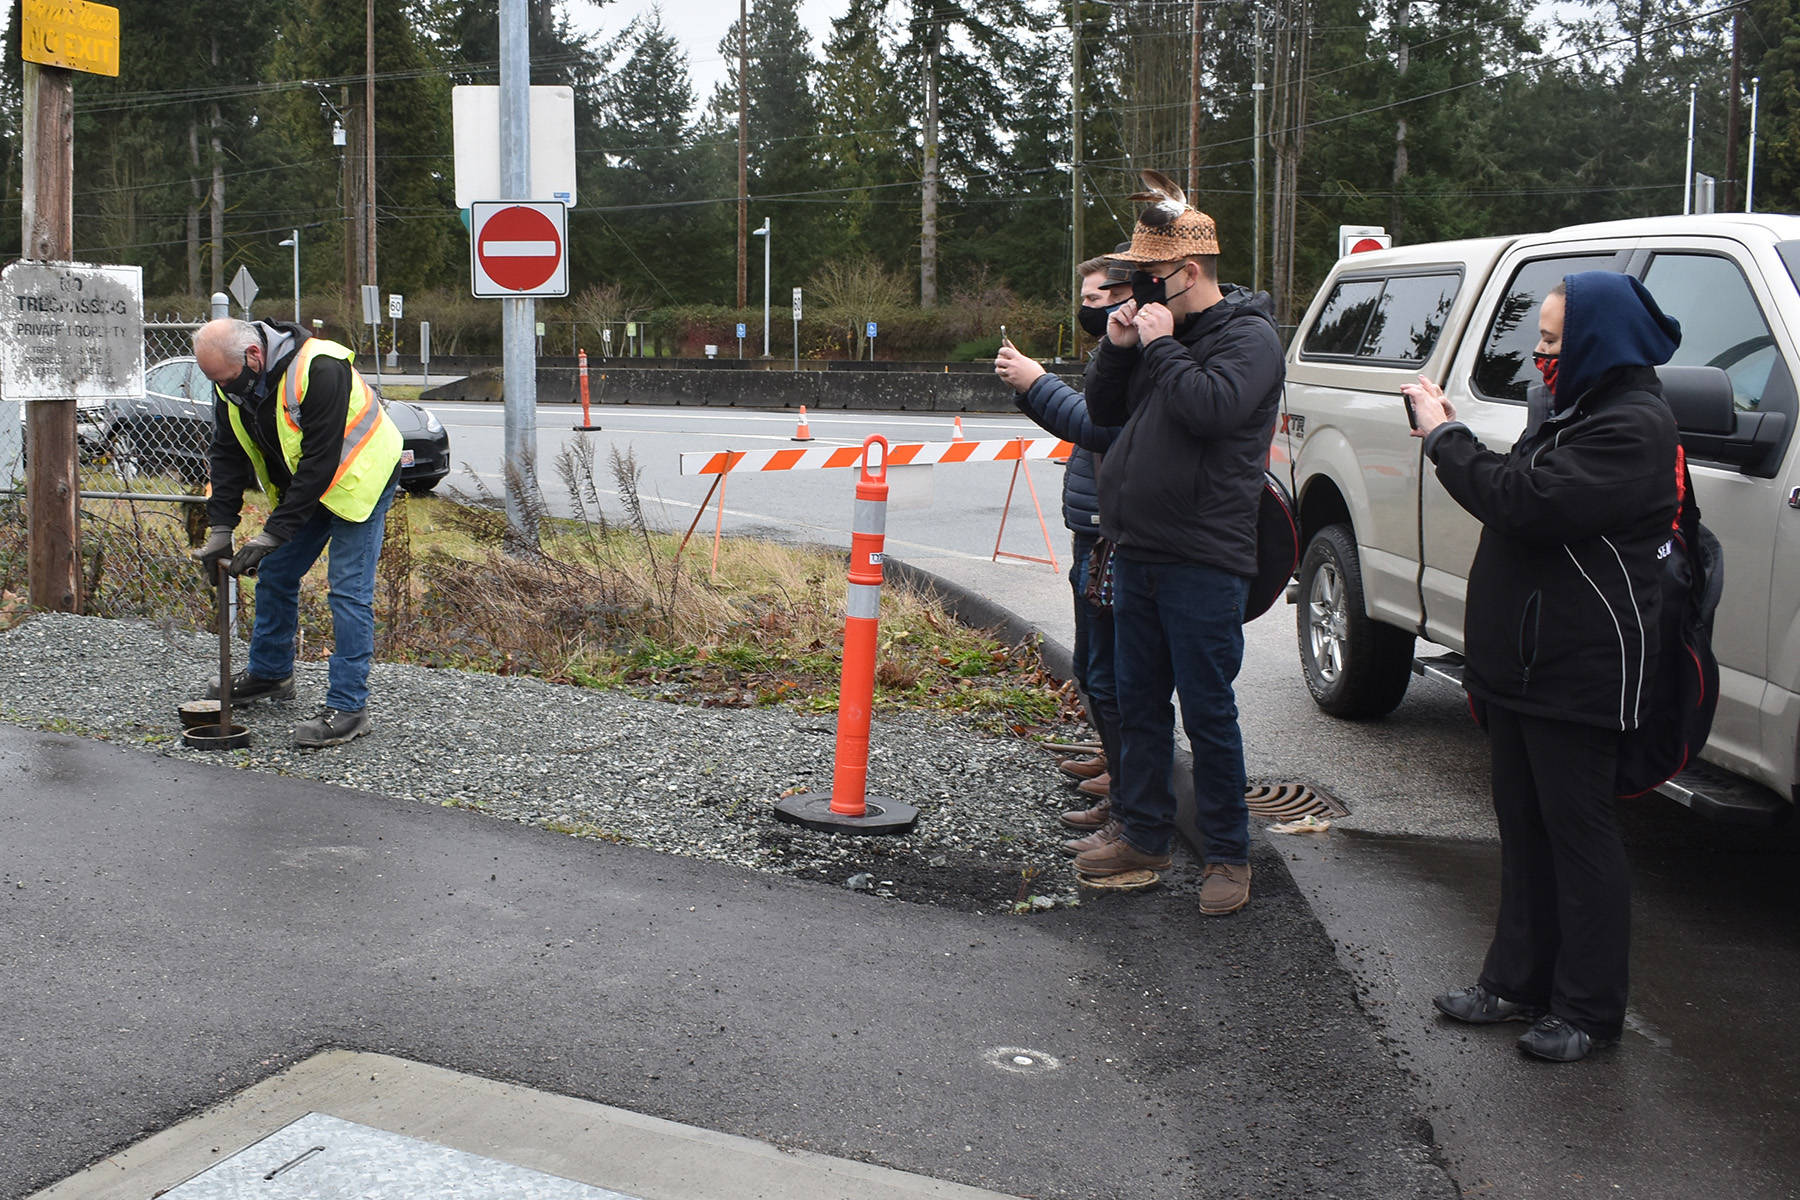 John Boros, of City of Surrey water operations turns on two underground roadside taps last December - one for potable water and one for emergency services - marking the completion of the long-awaited connection between SFN and the Surrey water supply. (File photo)